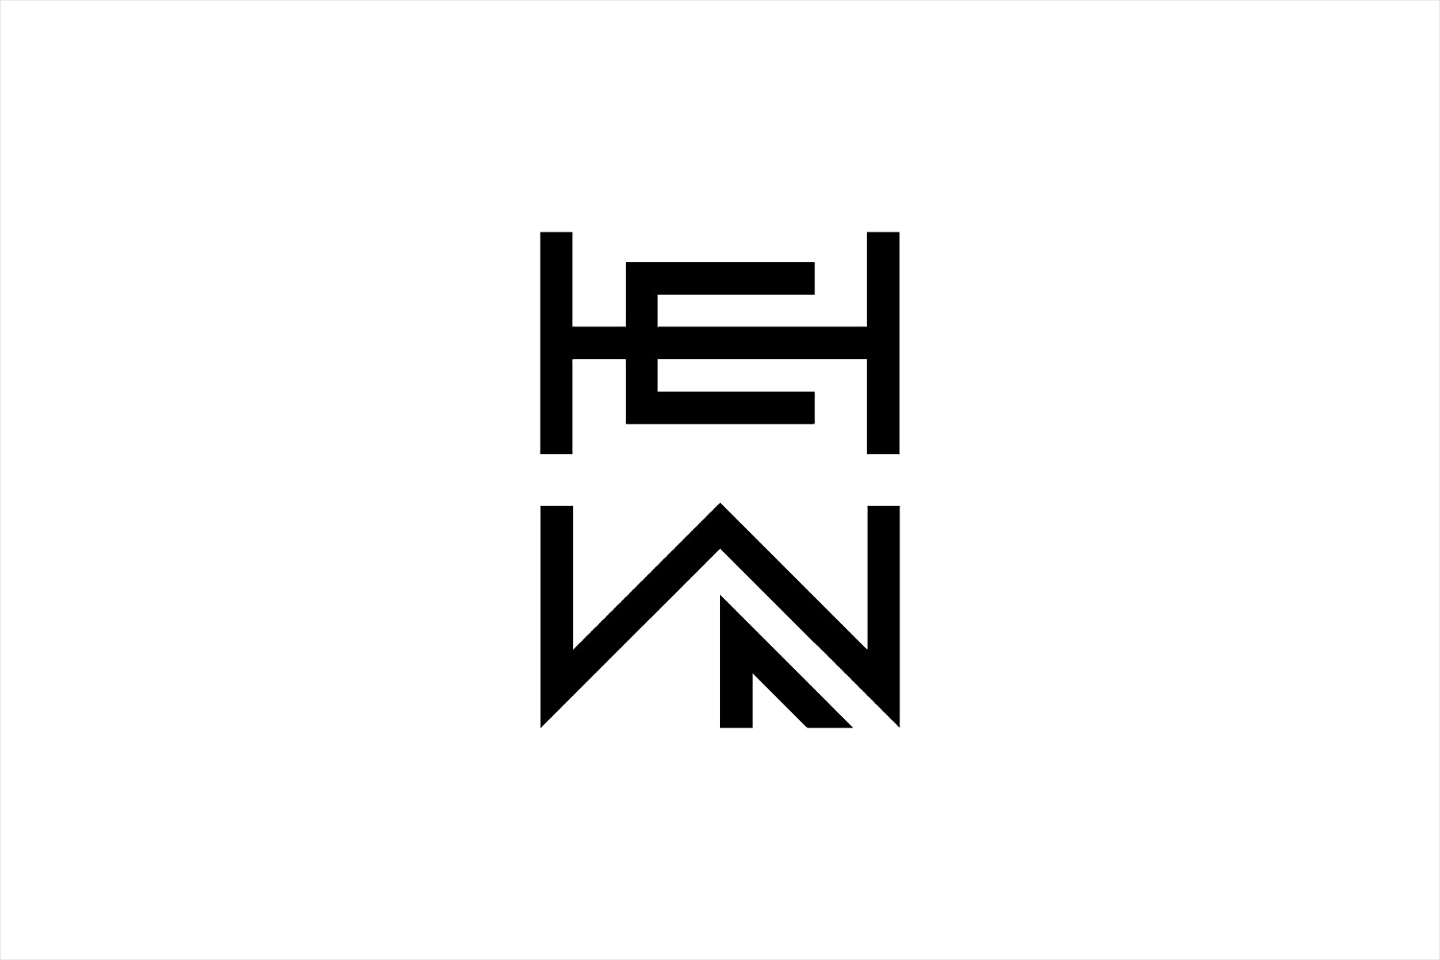 Monogram for woodworking shop Hewn designed by Föda, United States